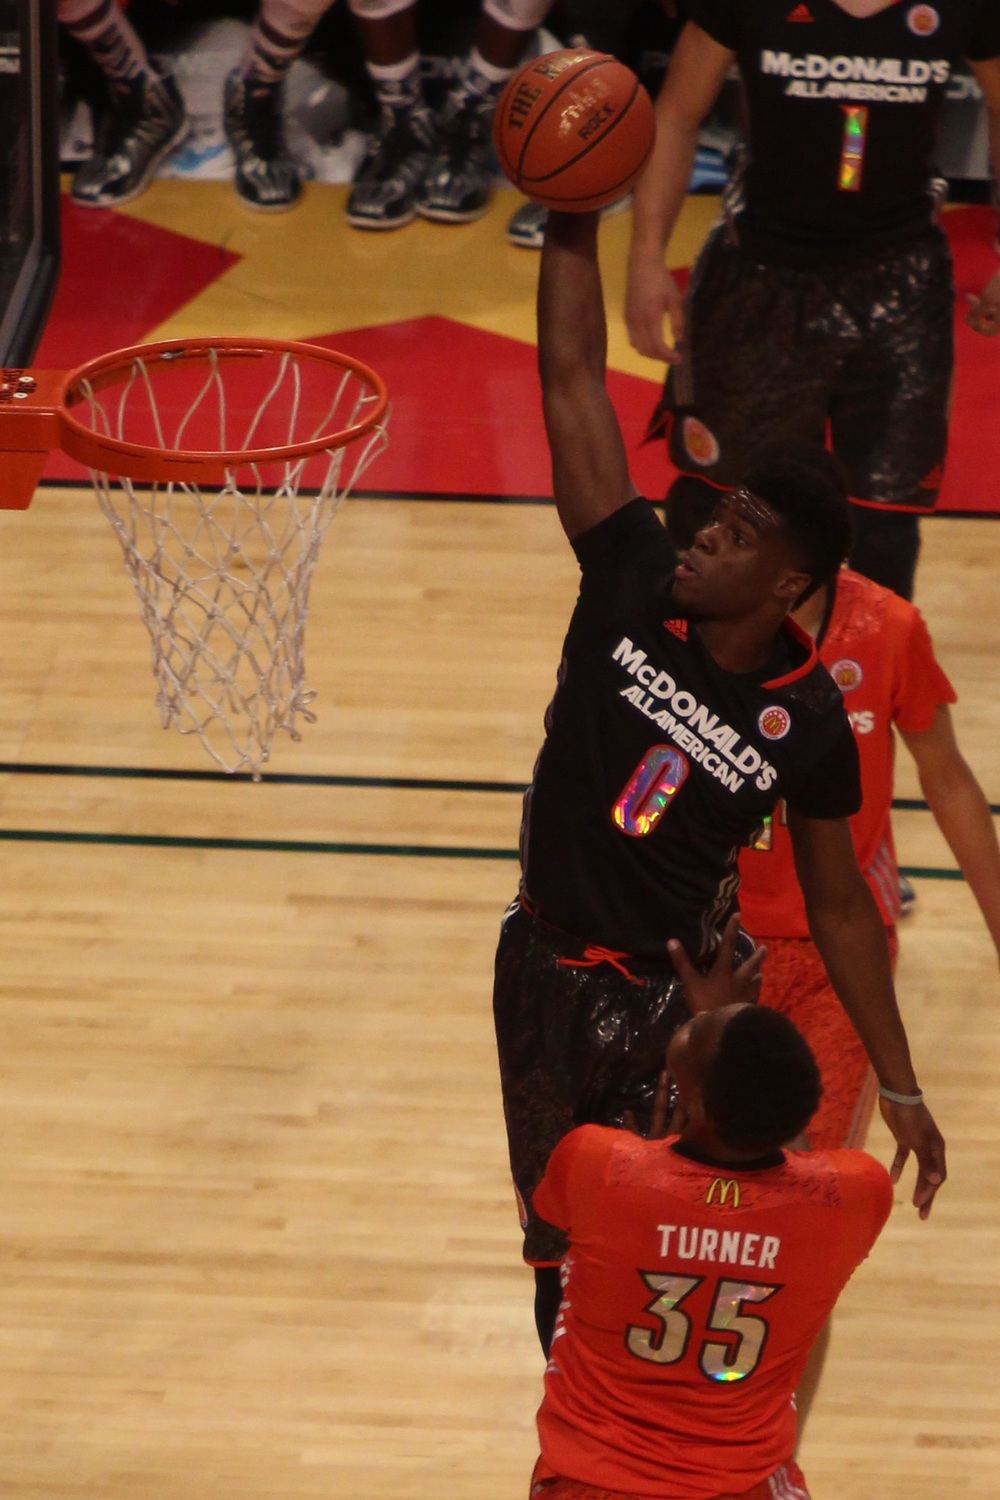 Emmanuel Mudiay in the 2014 McDonald's All-American Game